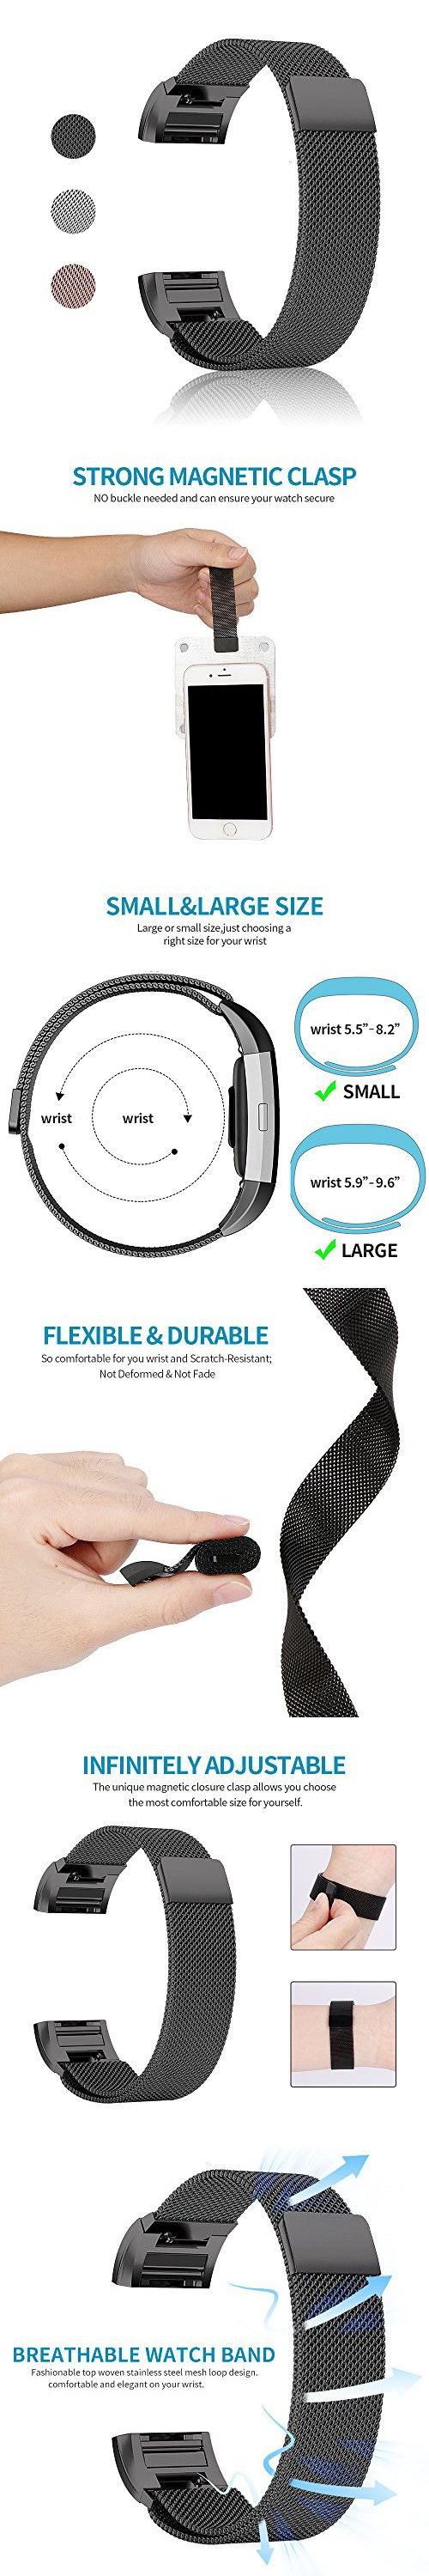 Fitbit Charge 2 Bands - TENKER Milanese Loop Stainless Steel Bracelet Smart Watch Strap with Unique Magnet Lock for Fitbit Charge 2 Replacement Wristbands (Black- Small)